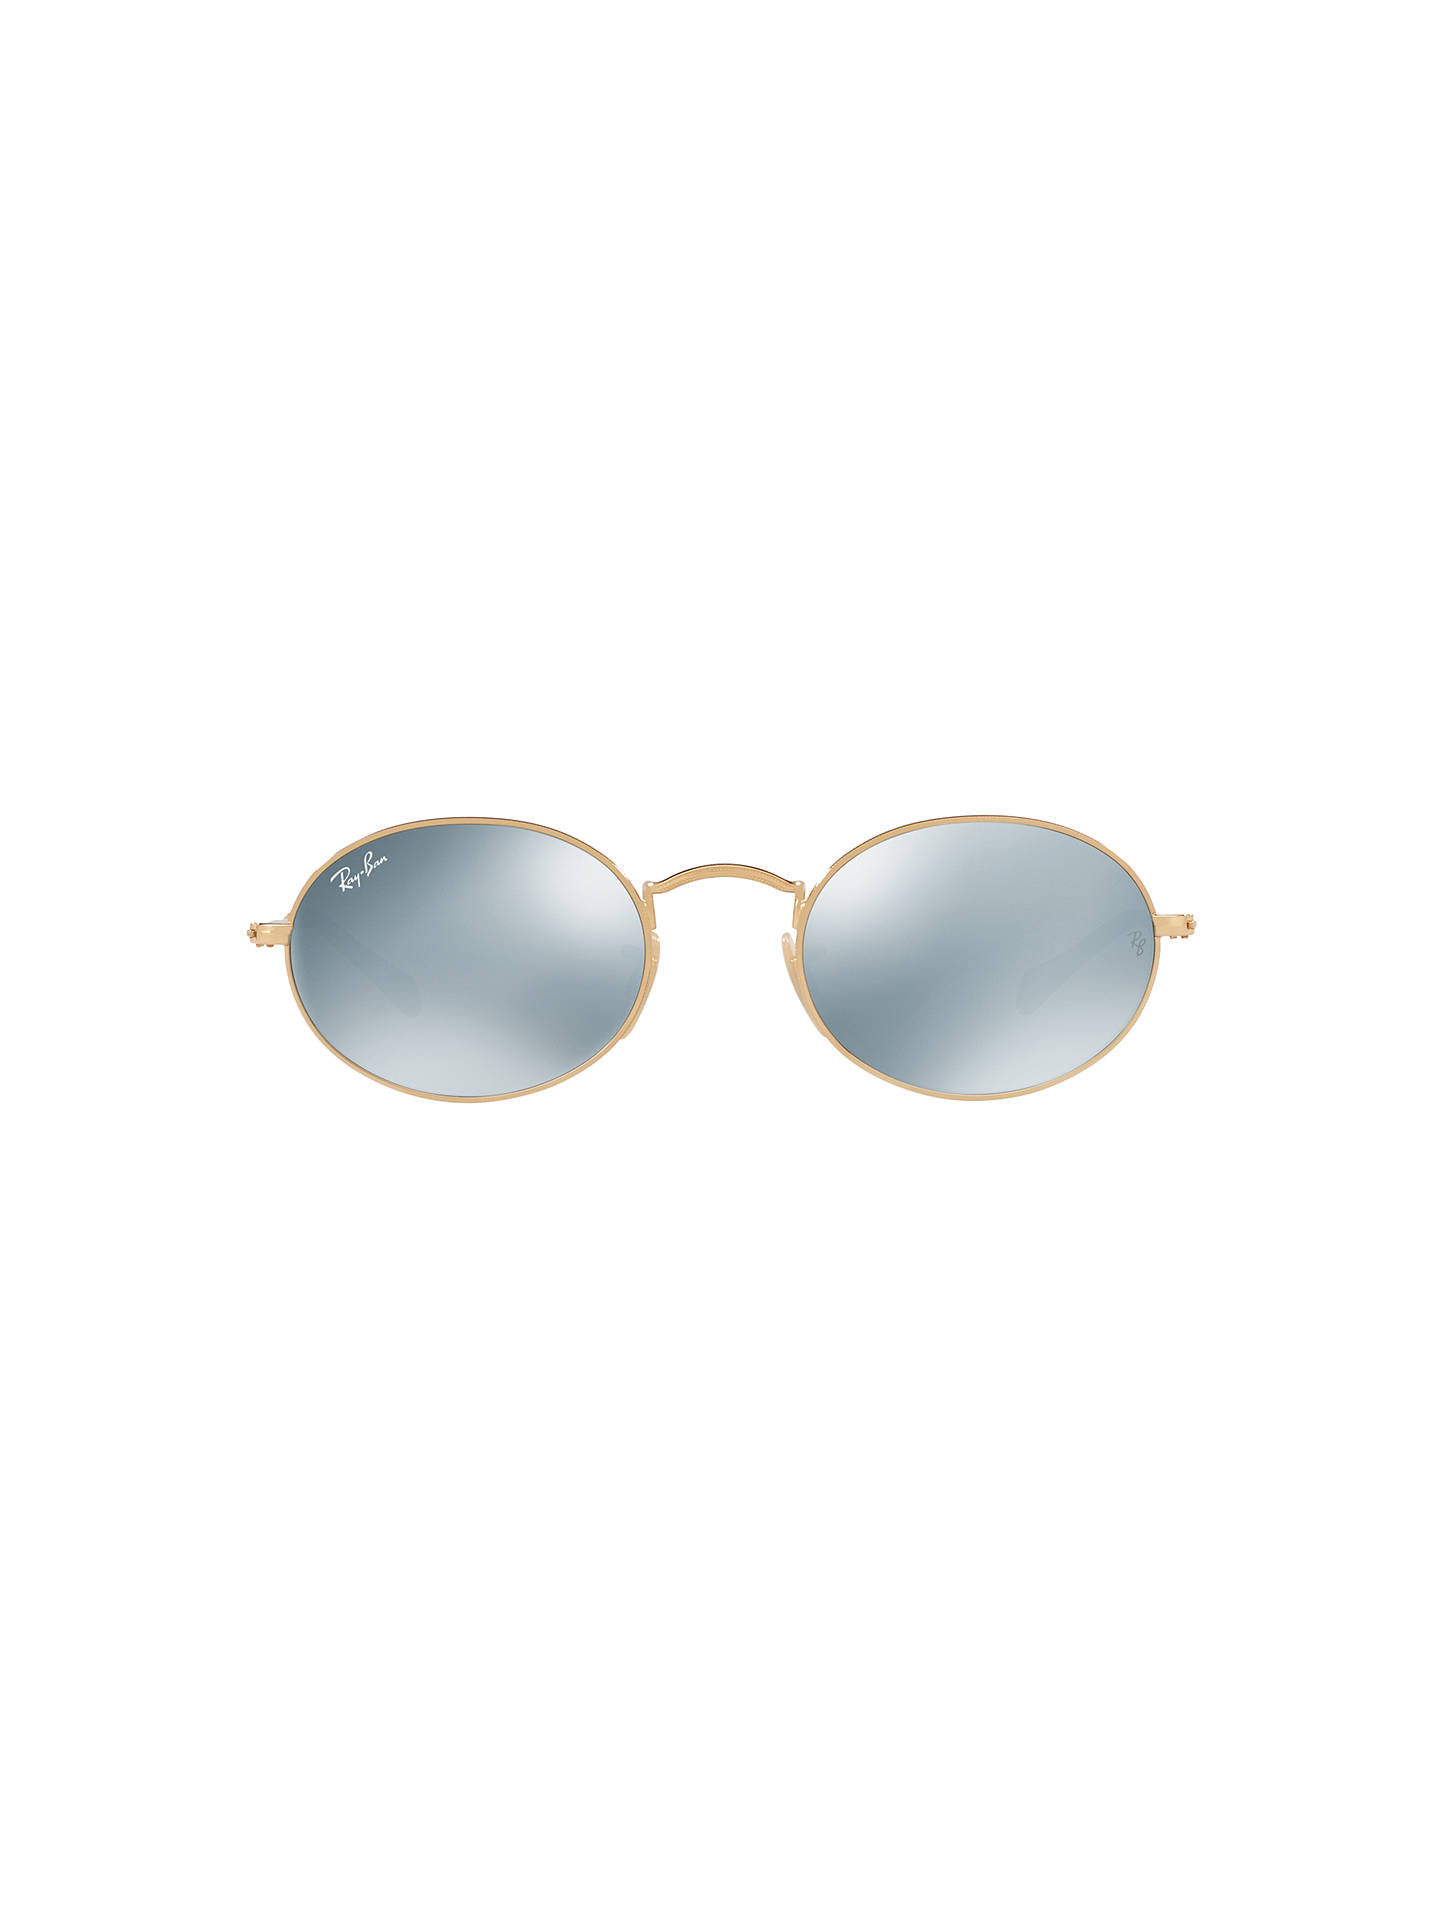 5856bf557 ... Buy Ray-Ban RB3547N Oval Flat Lens Sunglasses, Gold/Mirror Silver  Online at ...